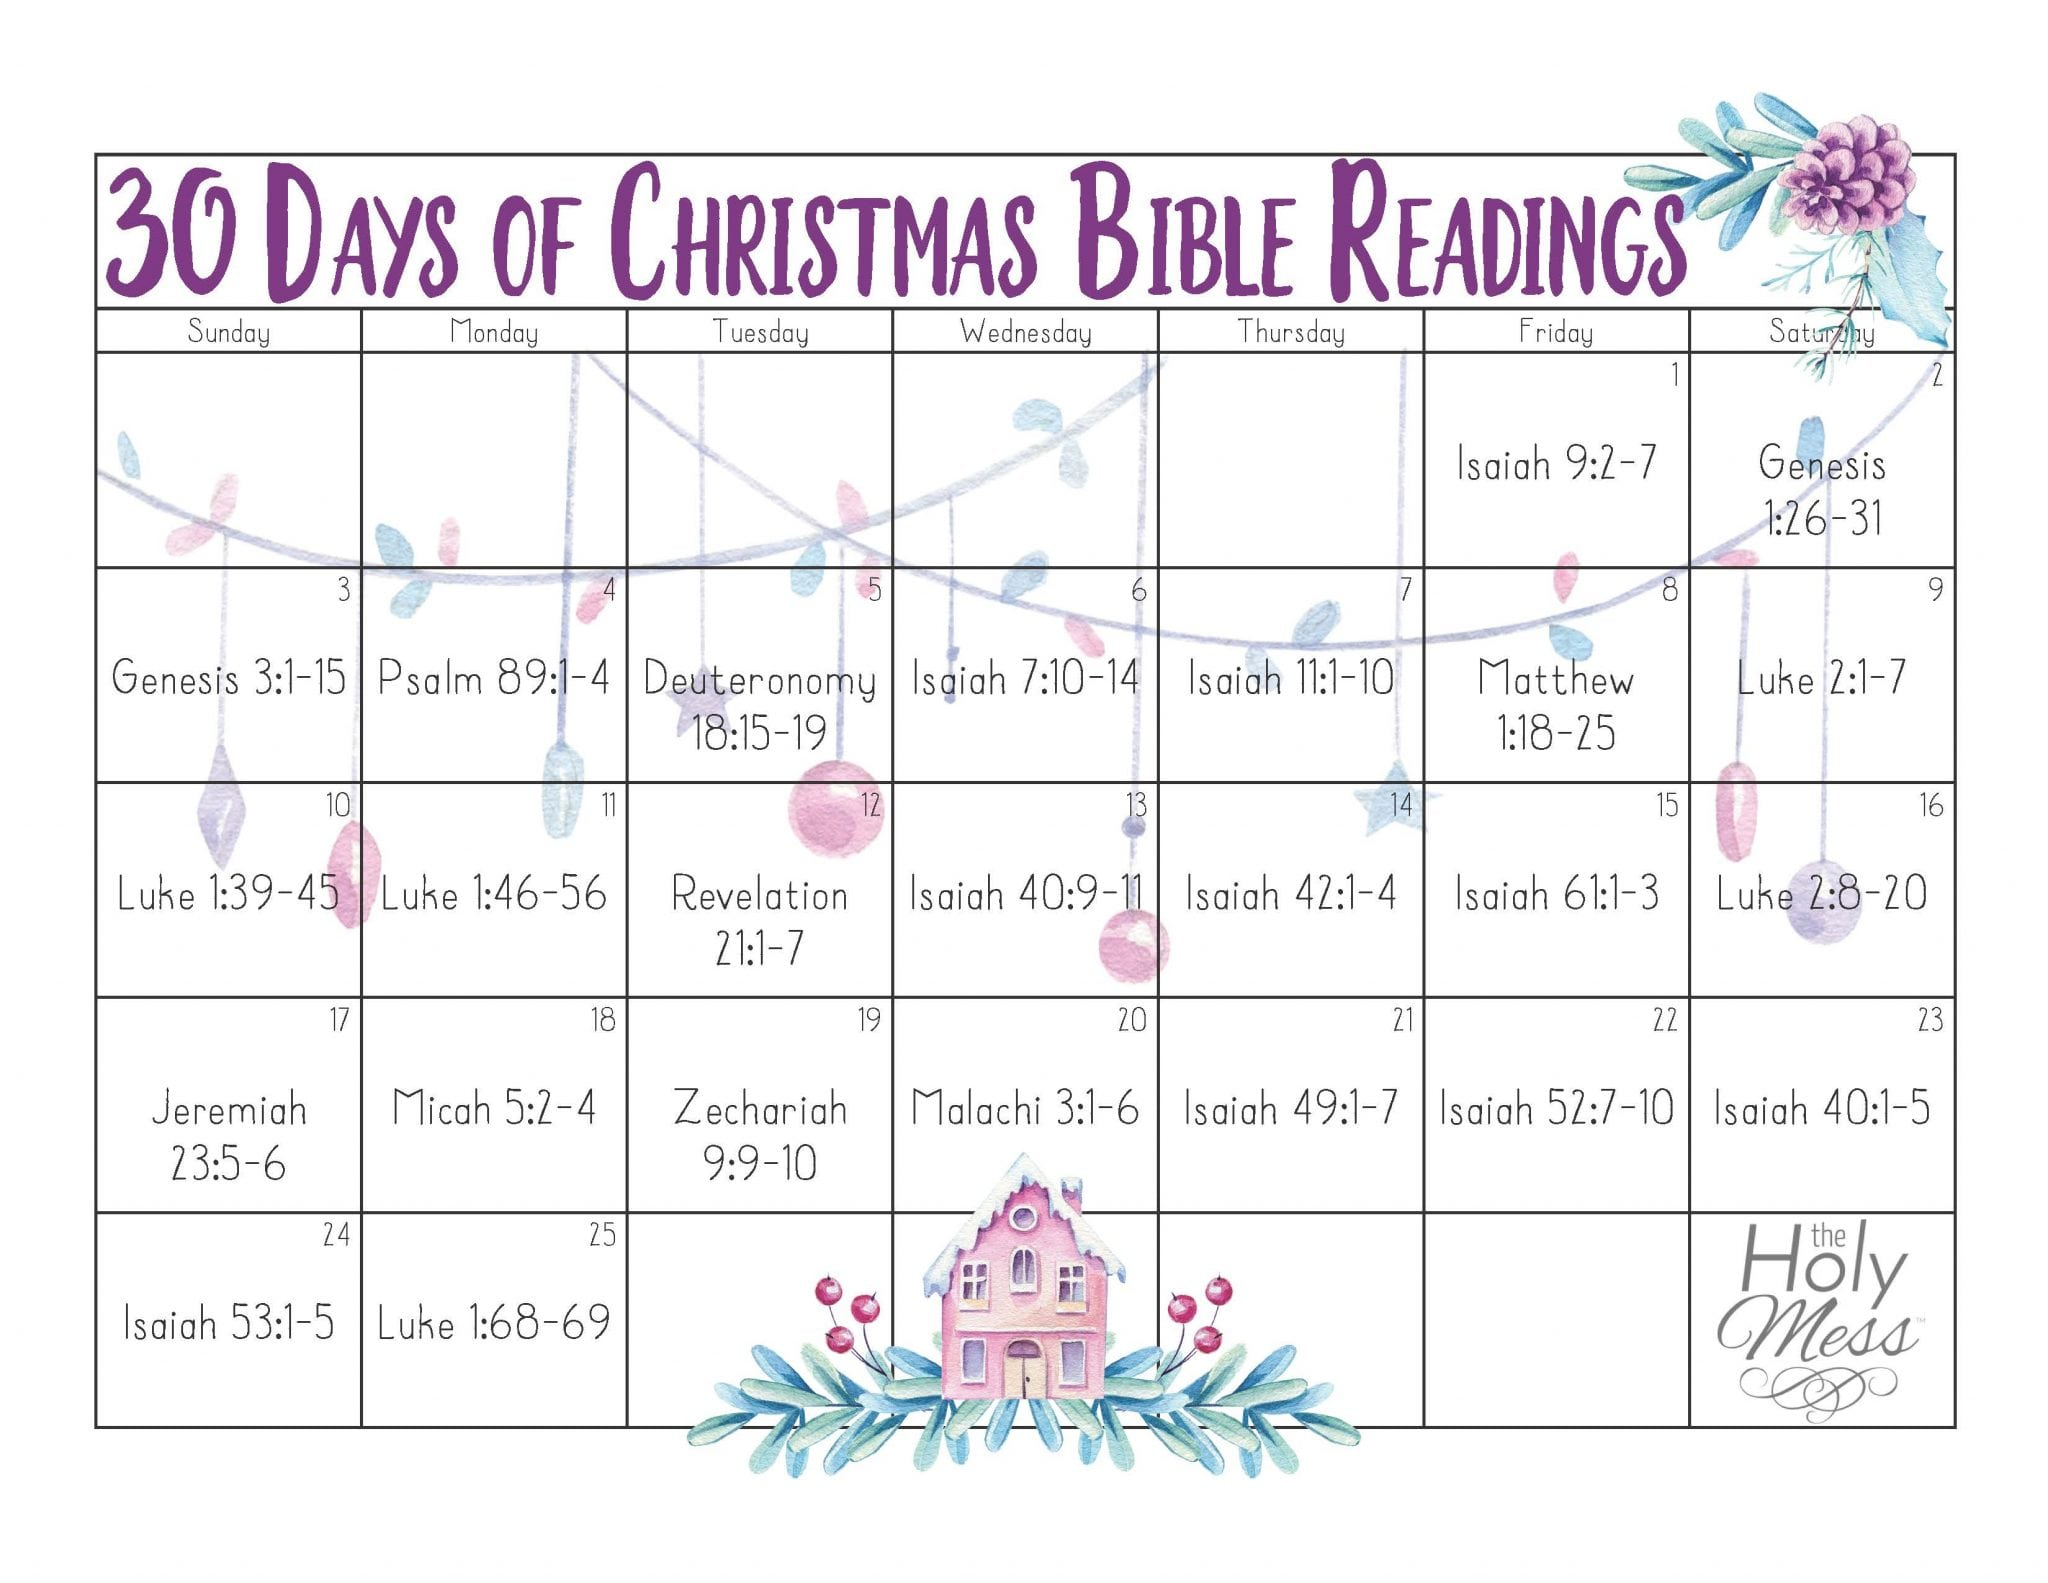 30 Days of Christmas Bible Readings